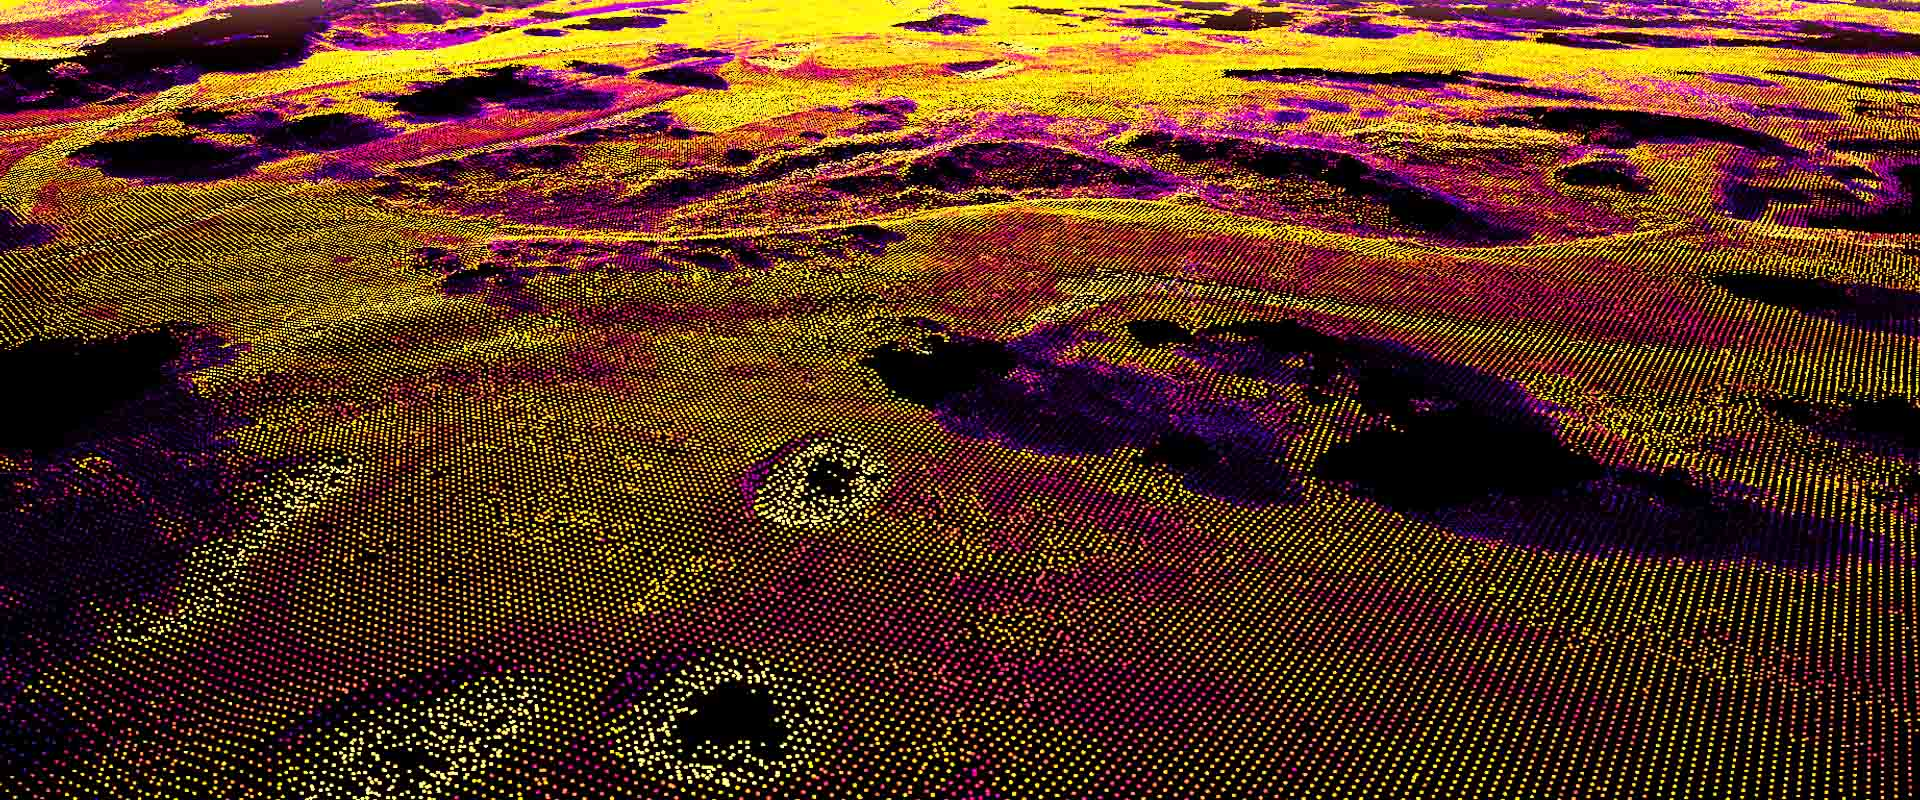 drone_agriculture_thermal_background